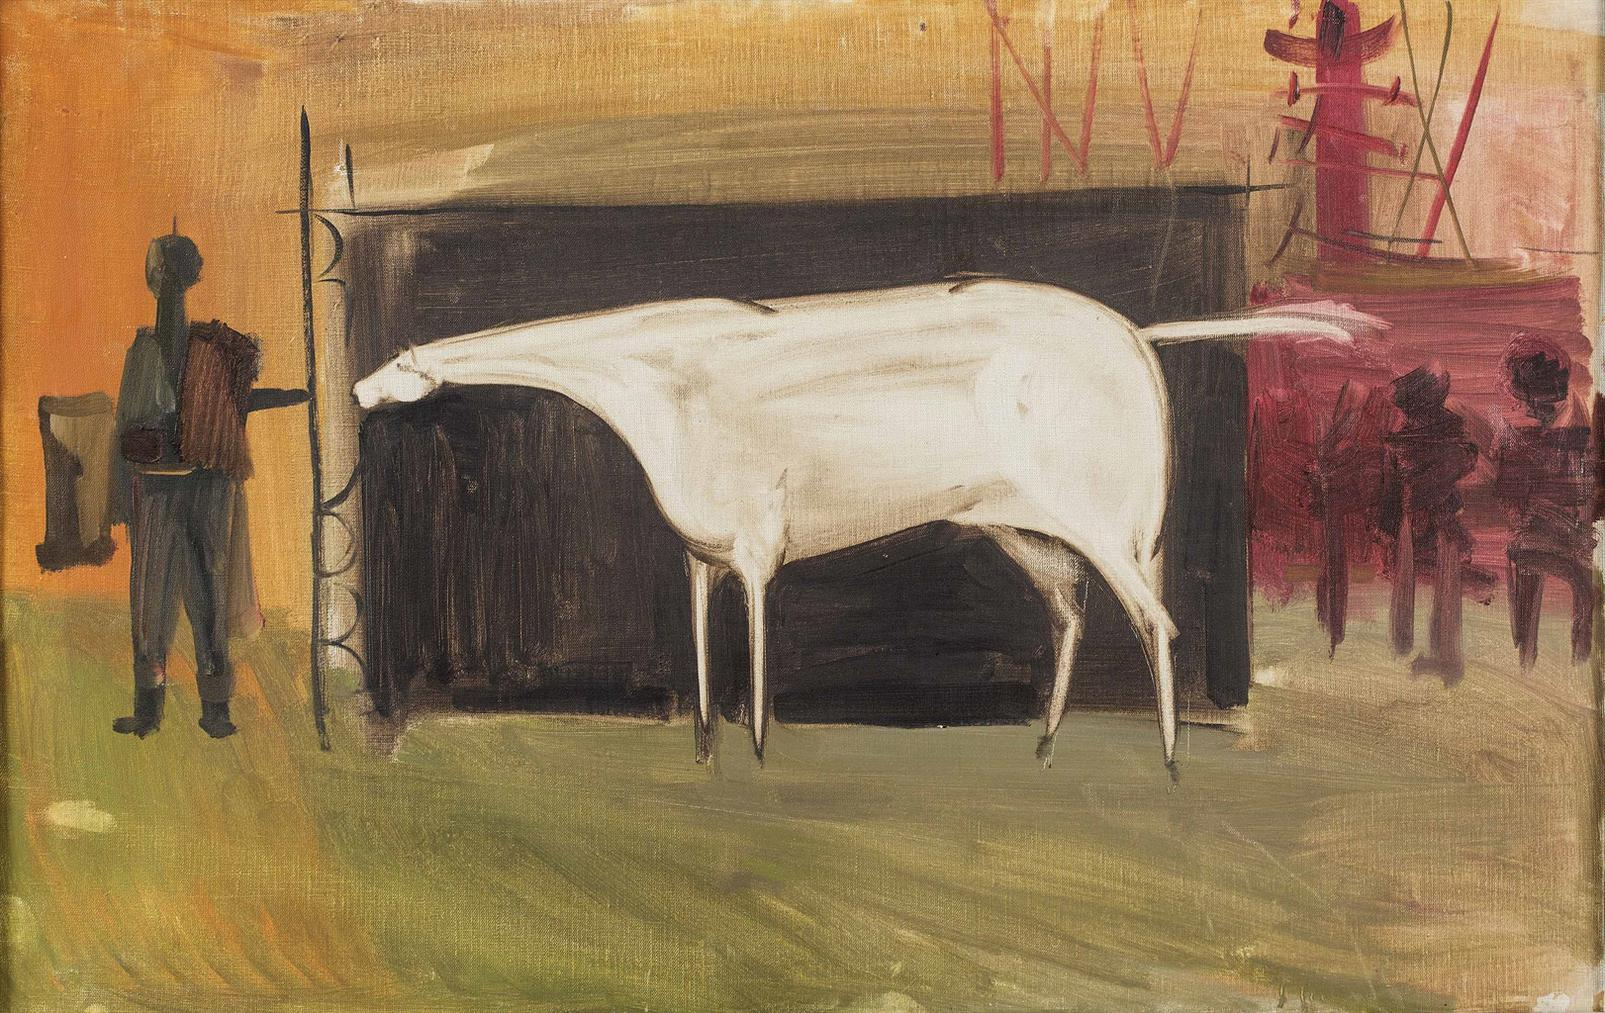 Kadhim Haider - And A Horse Is Selling-1965